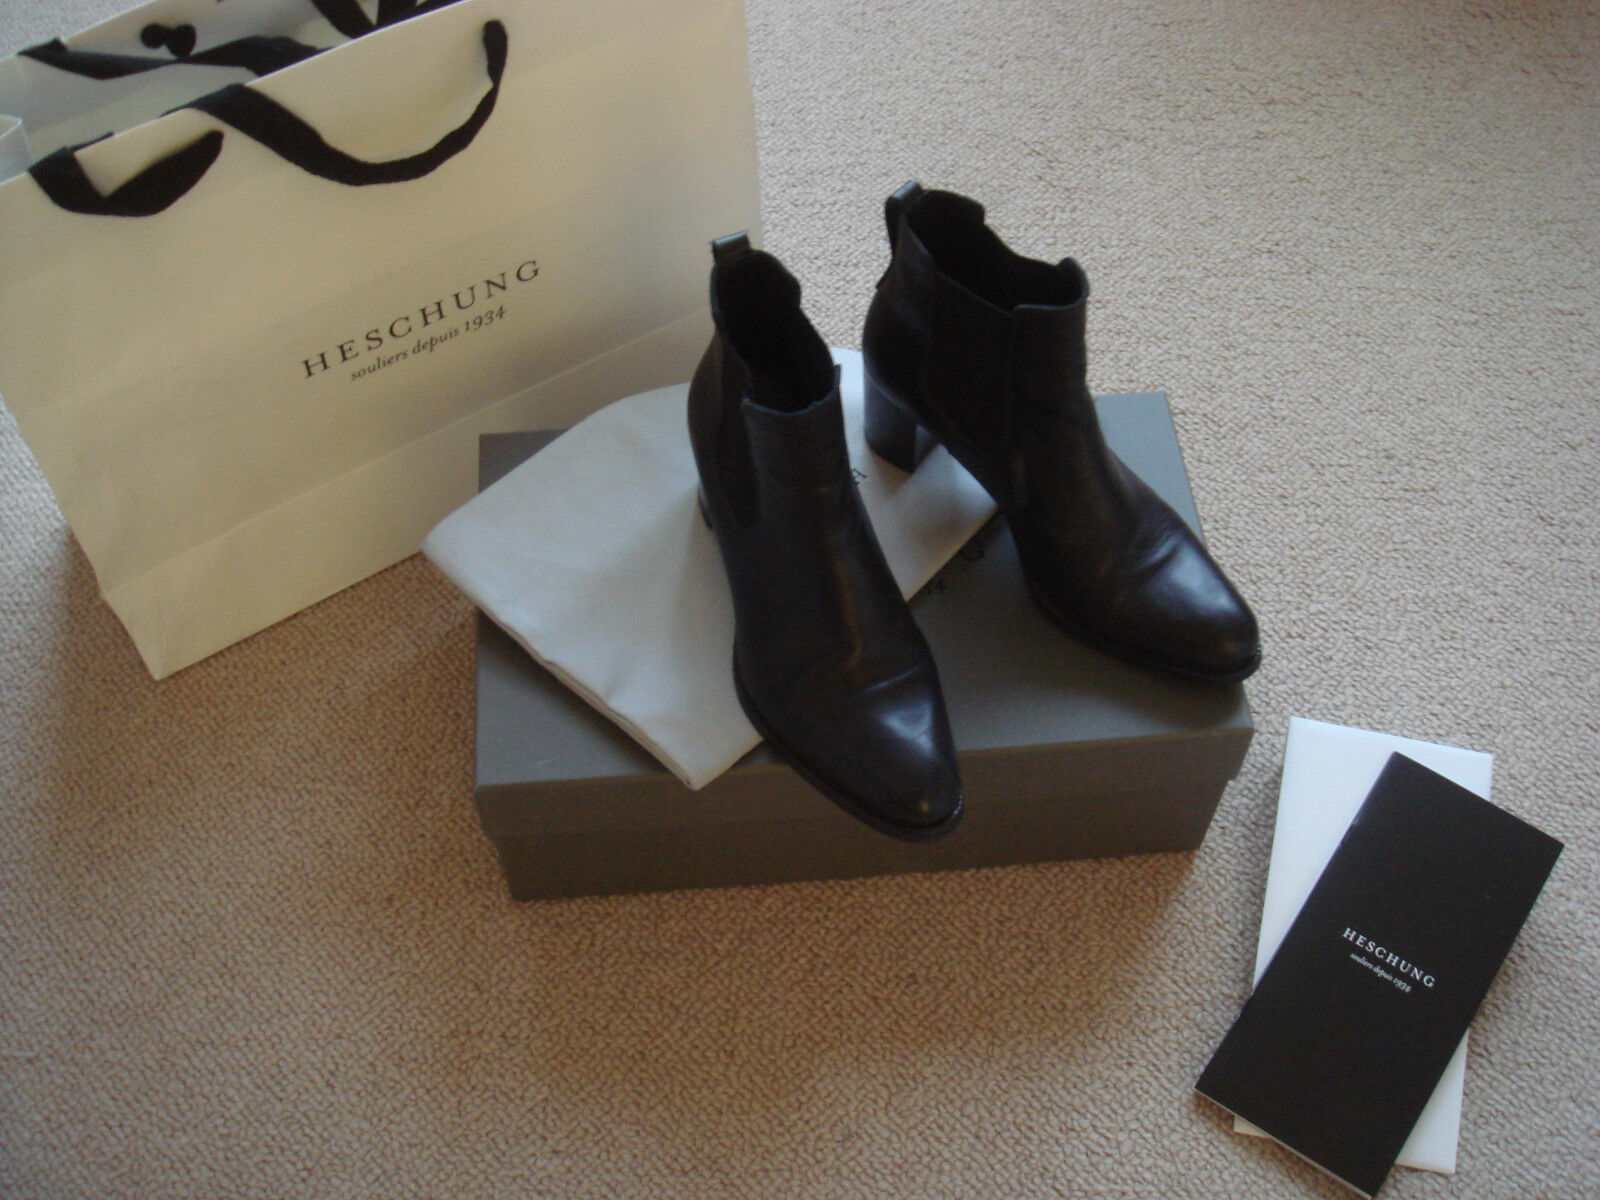 HESCHUNG Women's Ankle Boots in Black Leather size 6.5M Made in France